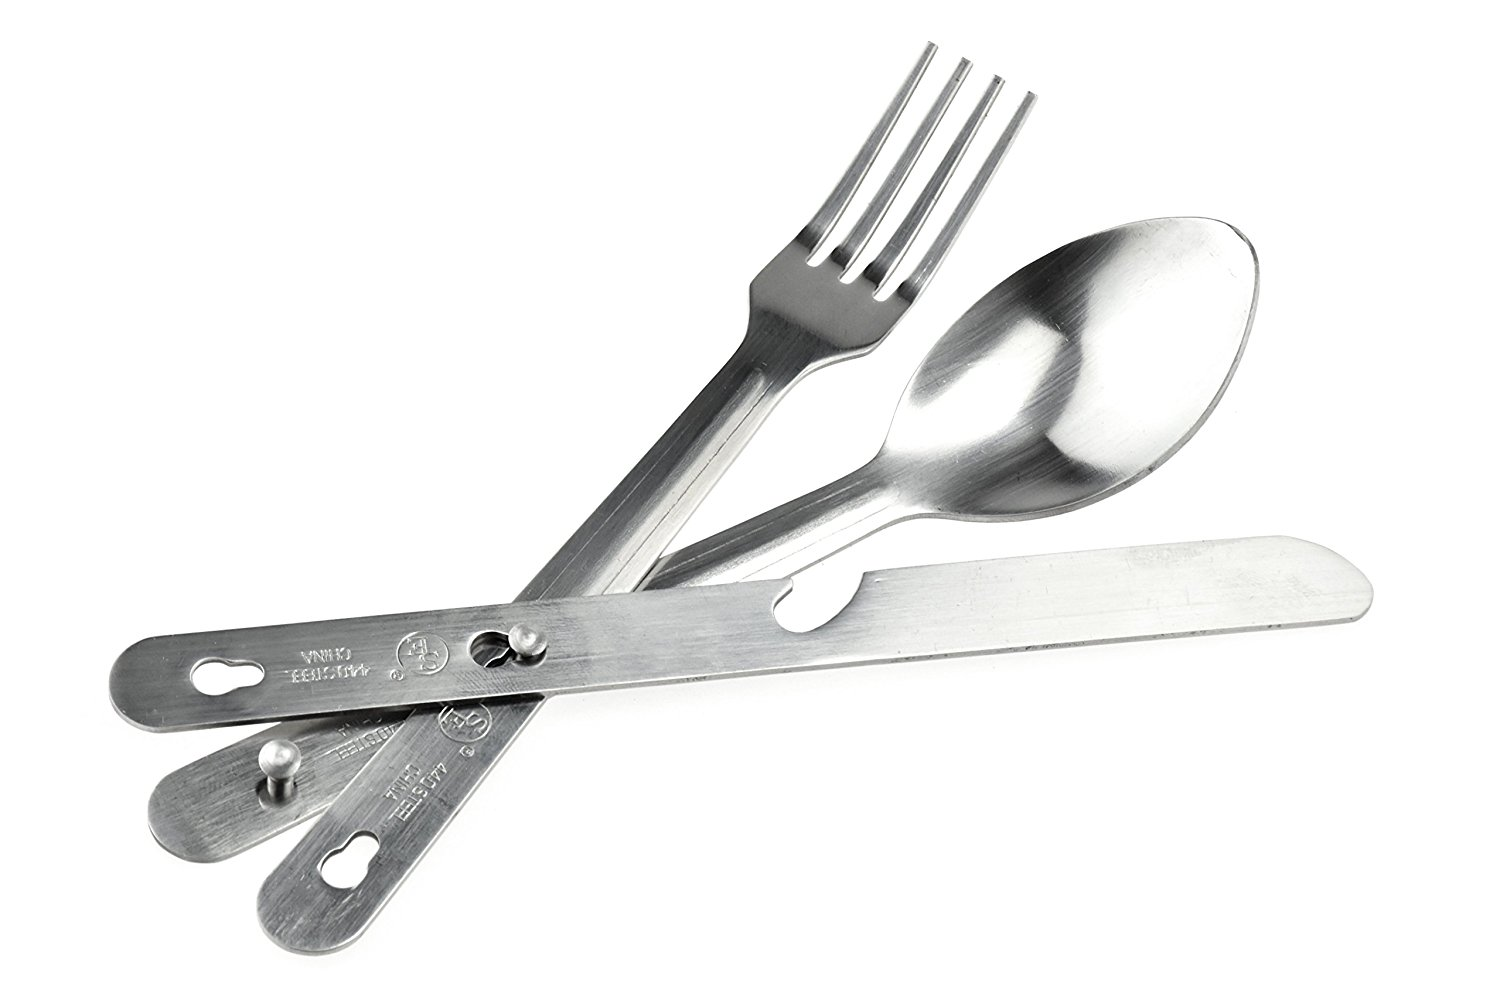 SE Stainless Steel Utensil Set (With Bottle Opener)